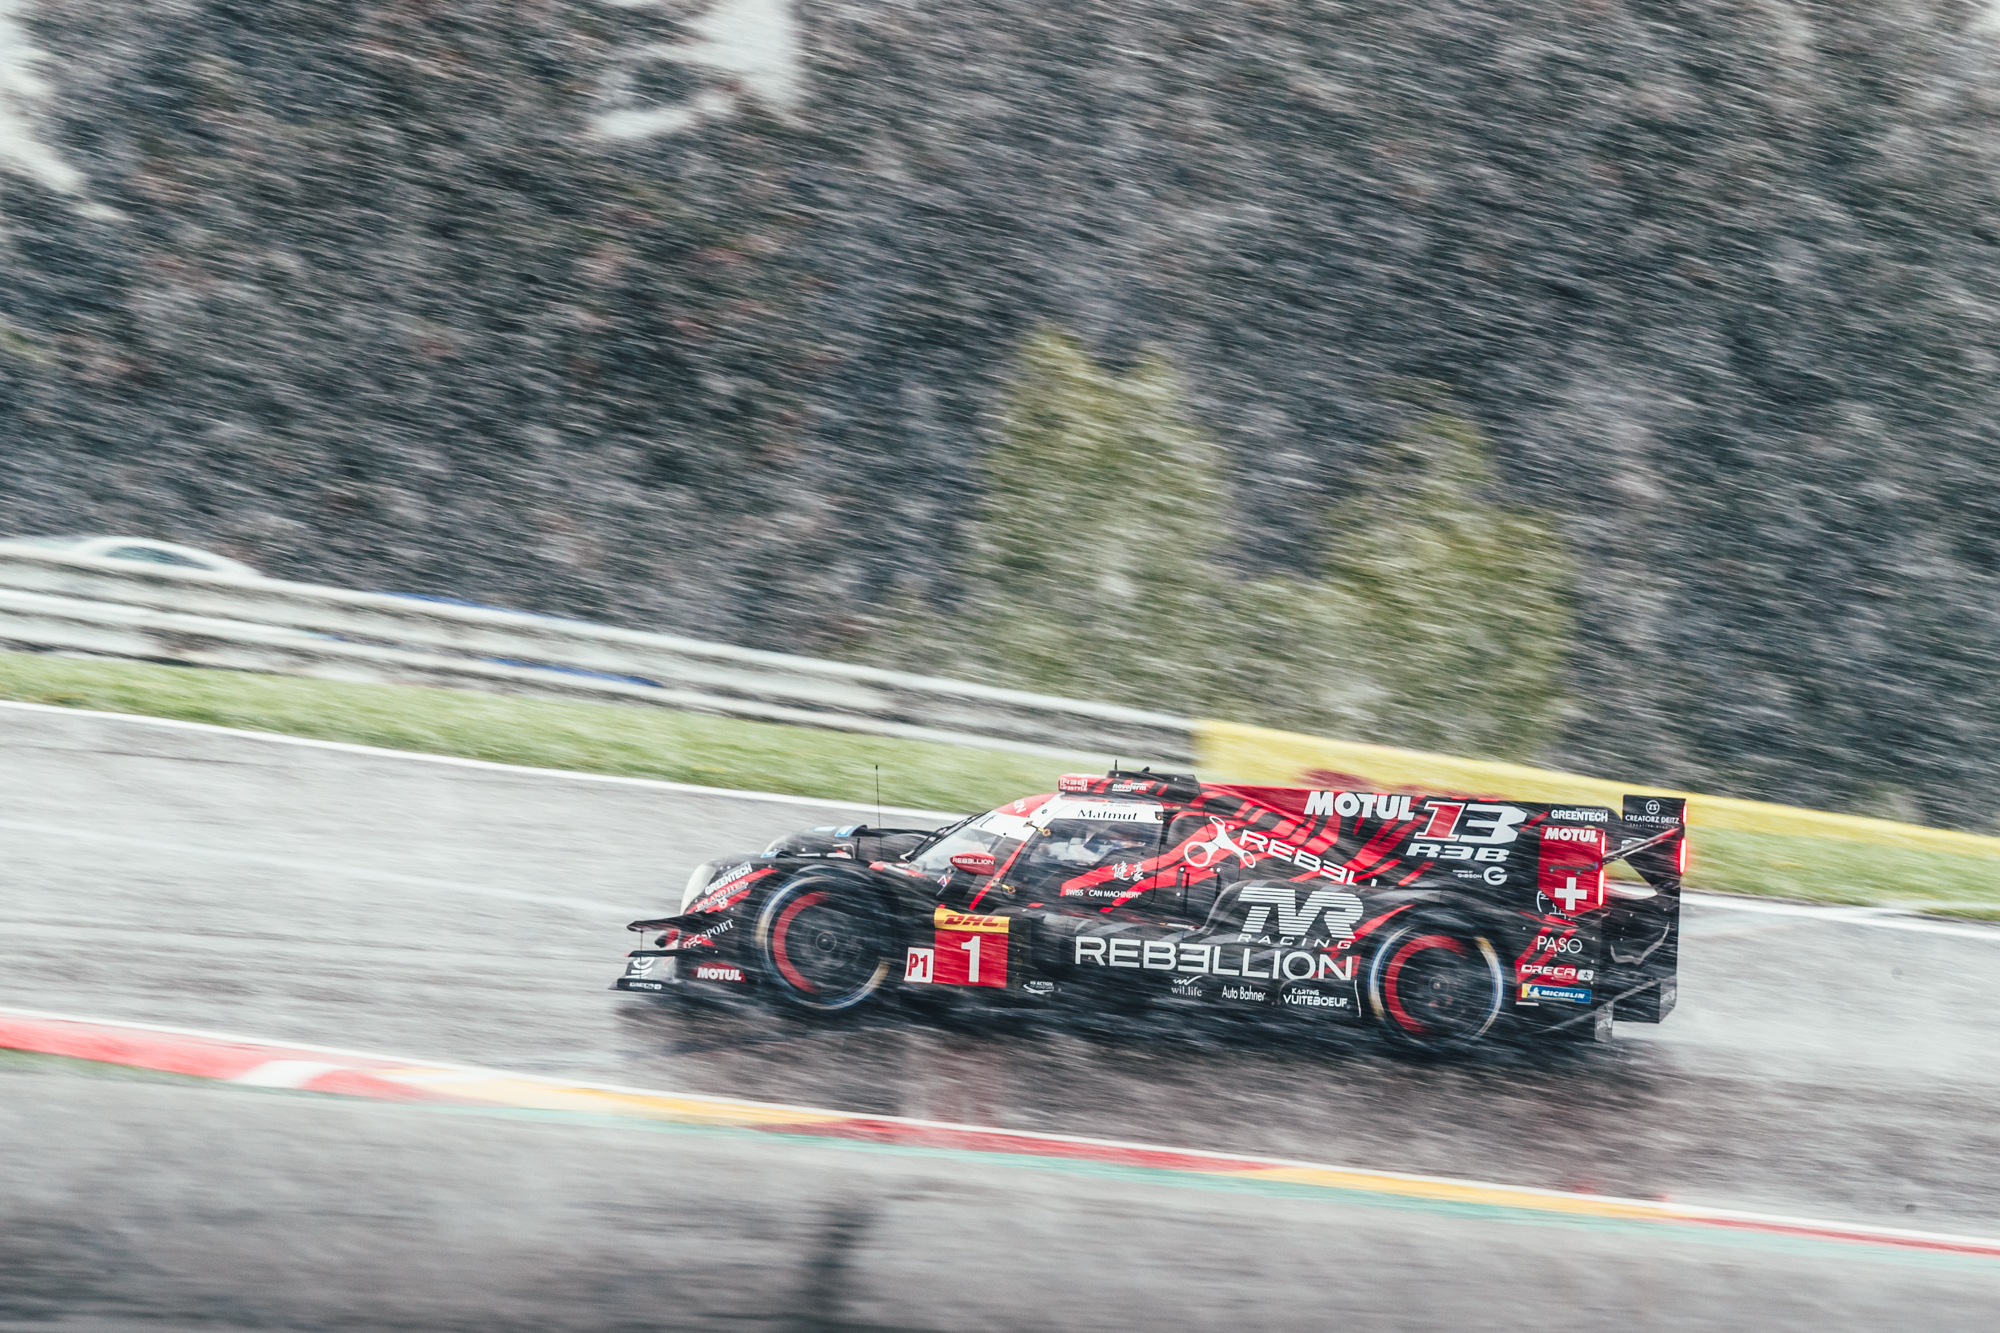 Motul - News/ The Drum - FIA WEC in Spa almost became